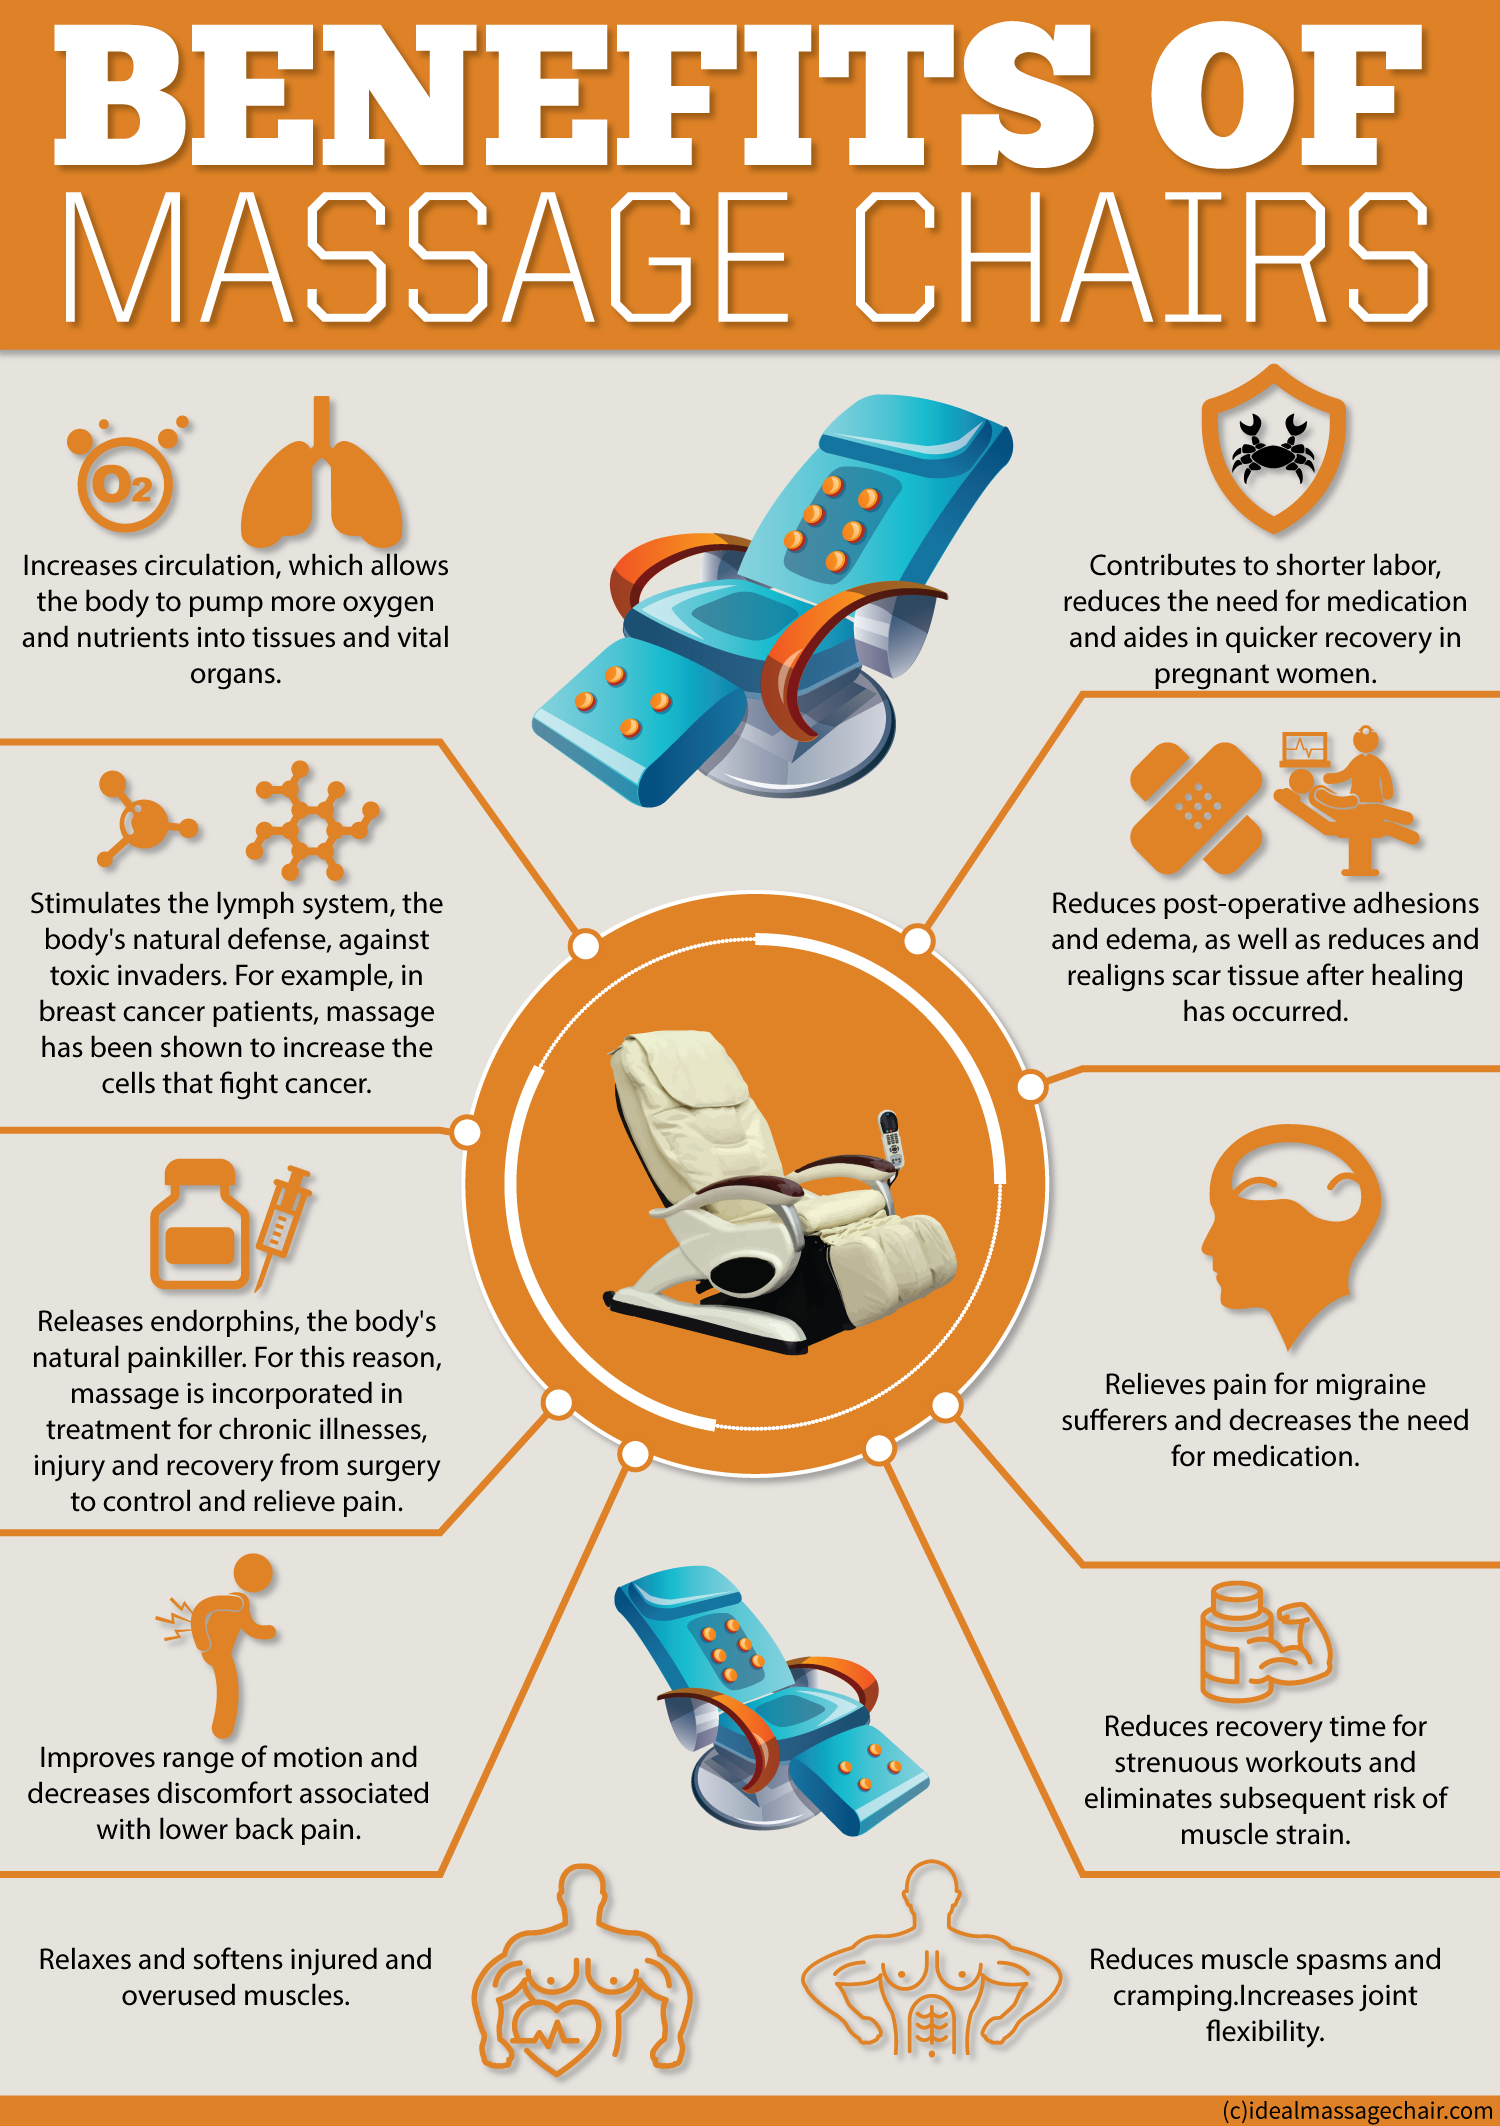 Massage Chairs Is One Of The Fastest Growing Industry In Us This Infographic Provides Some